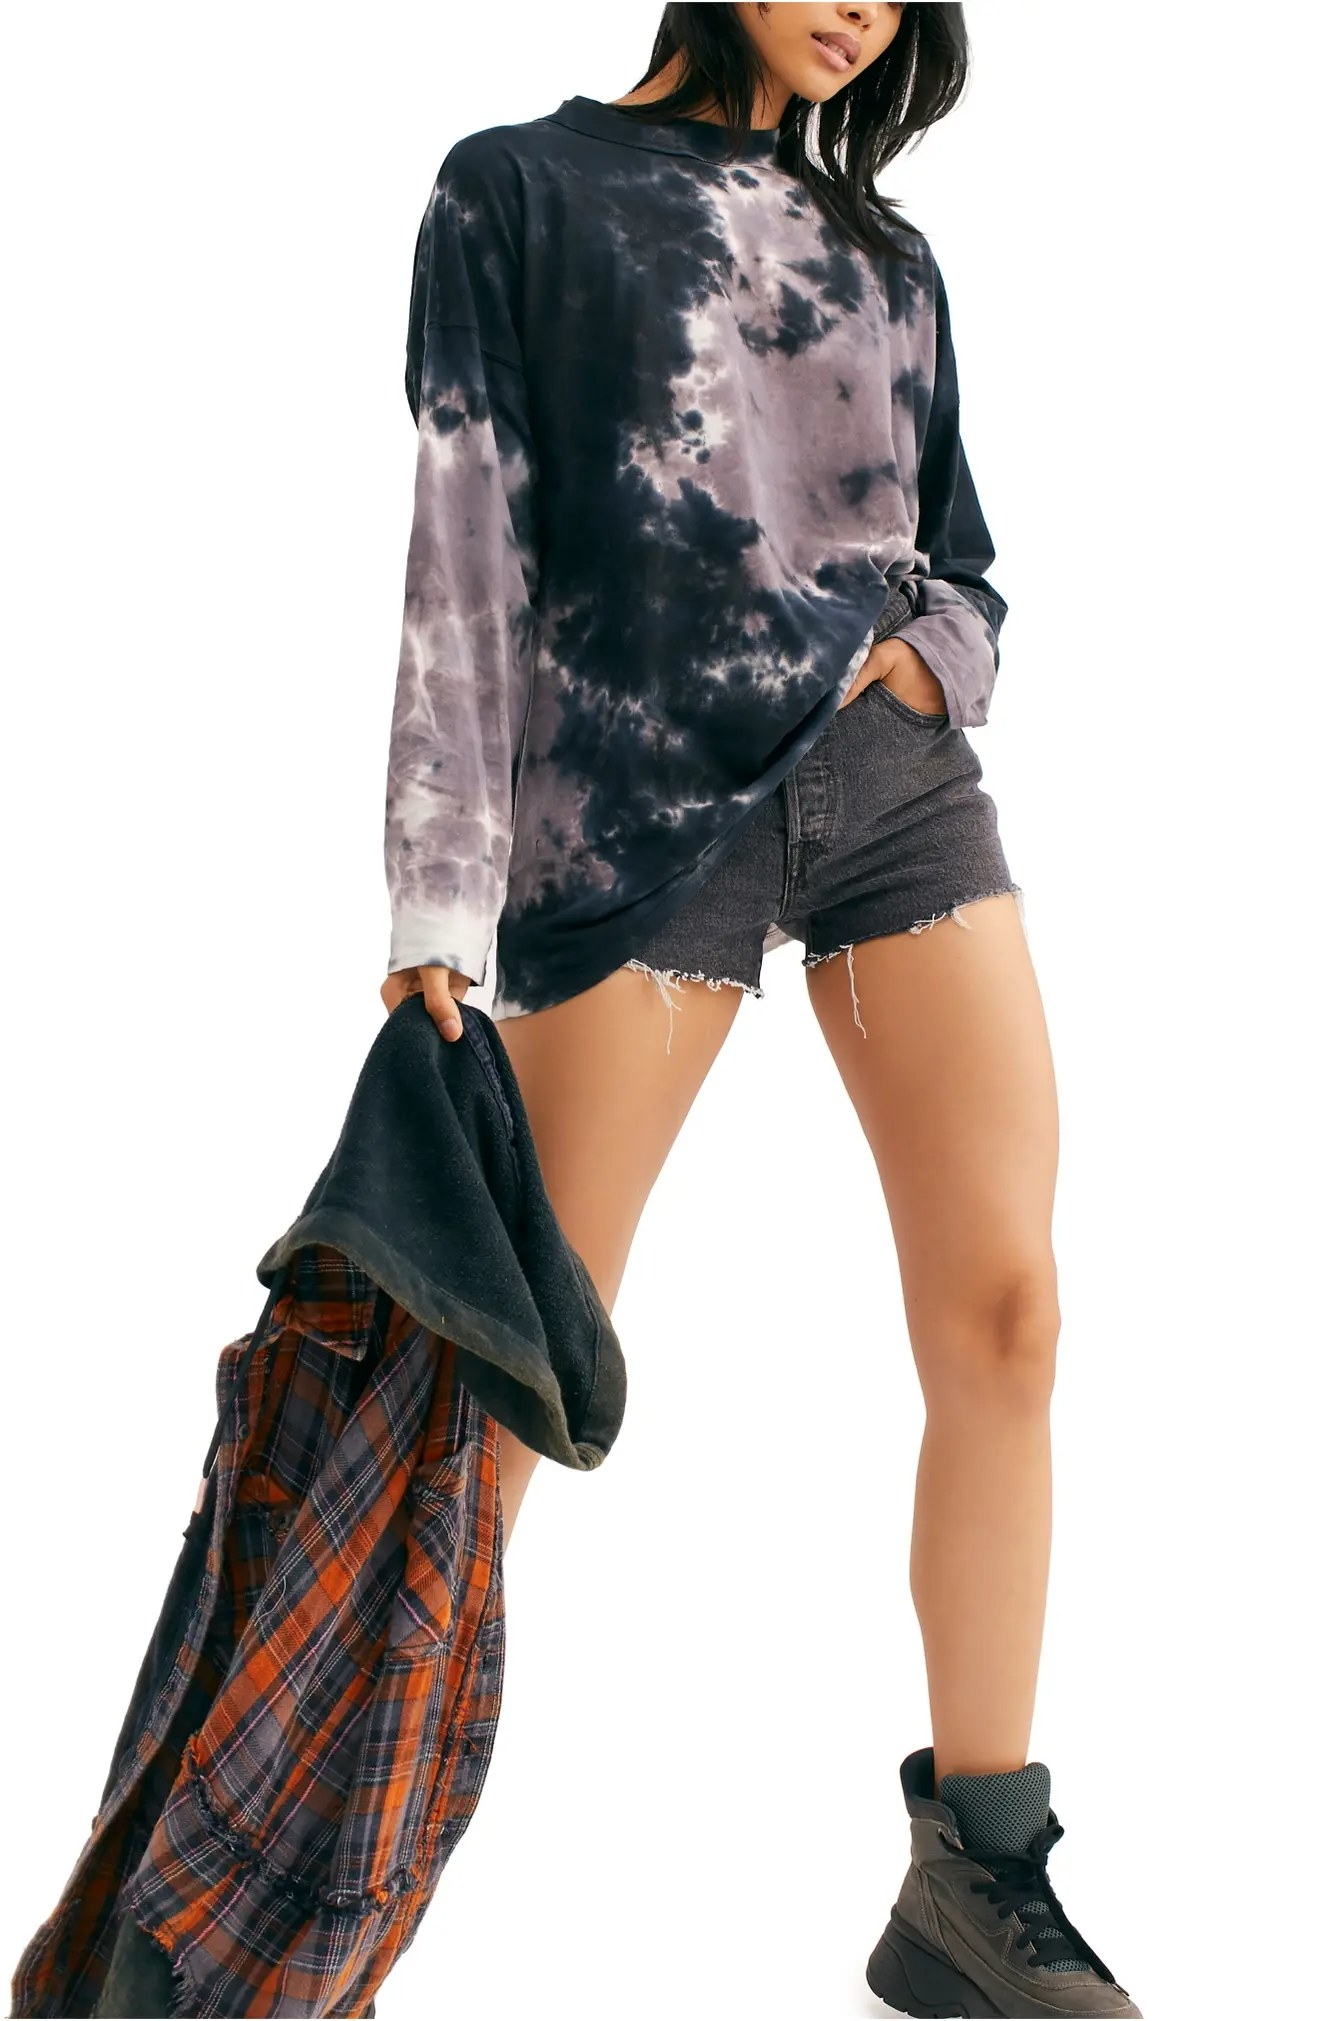 The shirt paired with frayed denim shorts